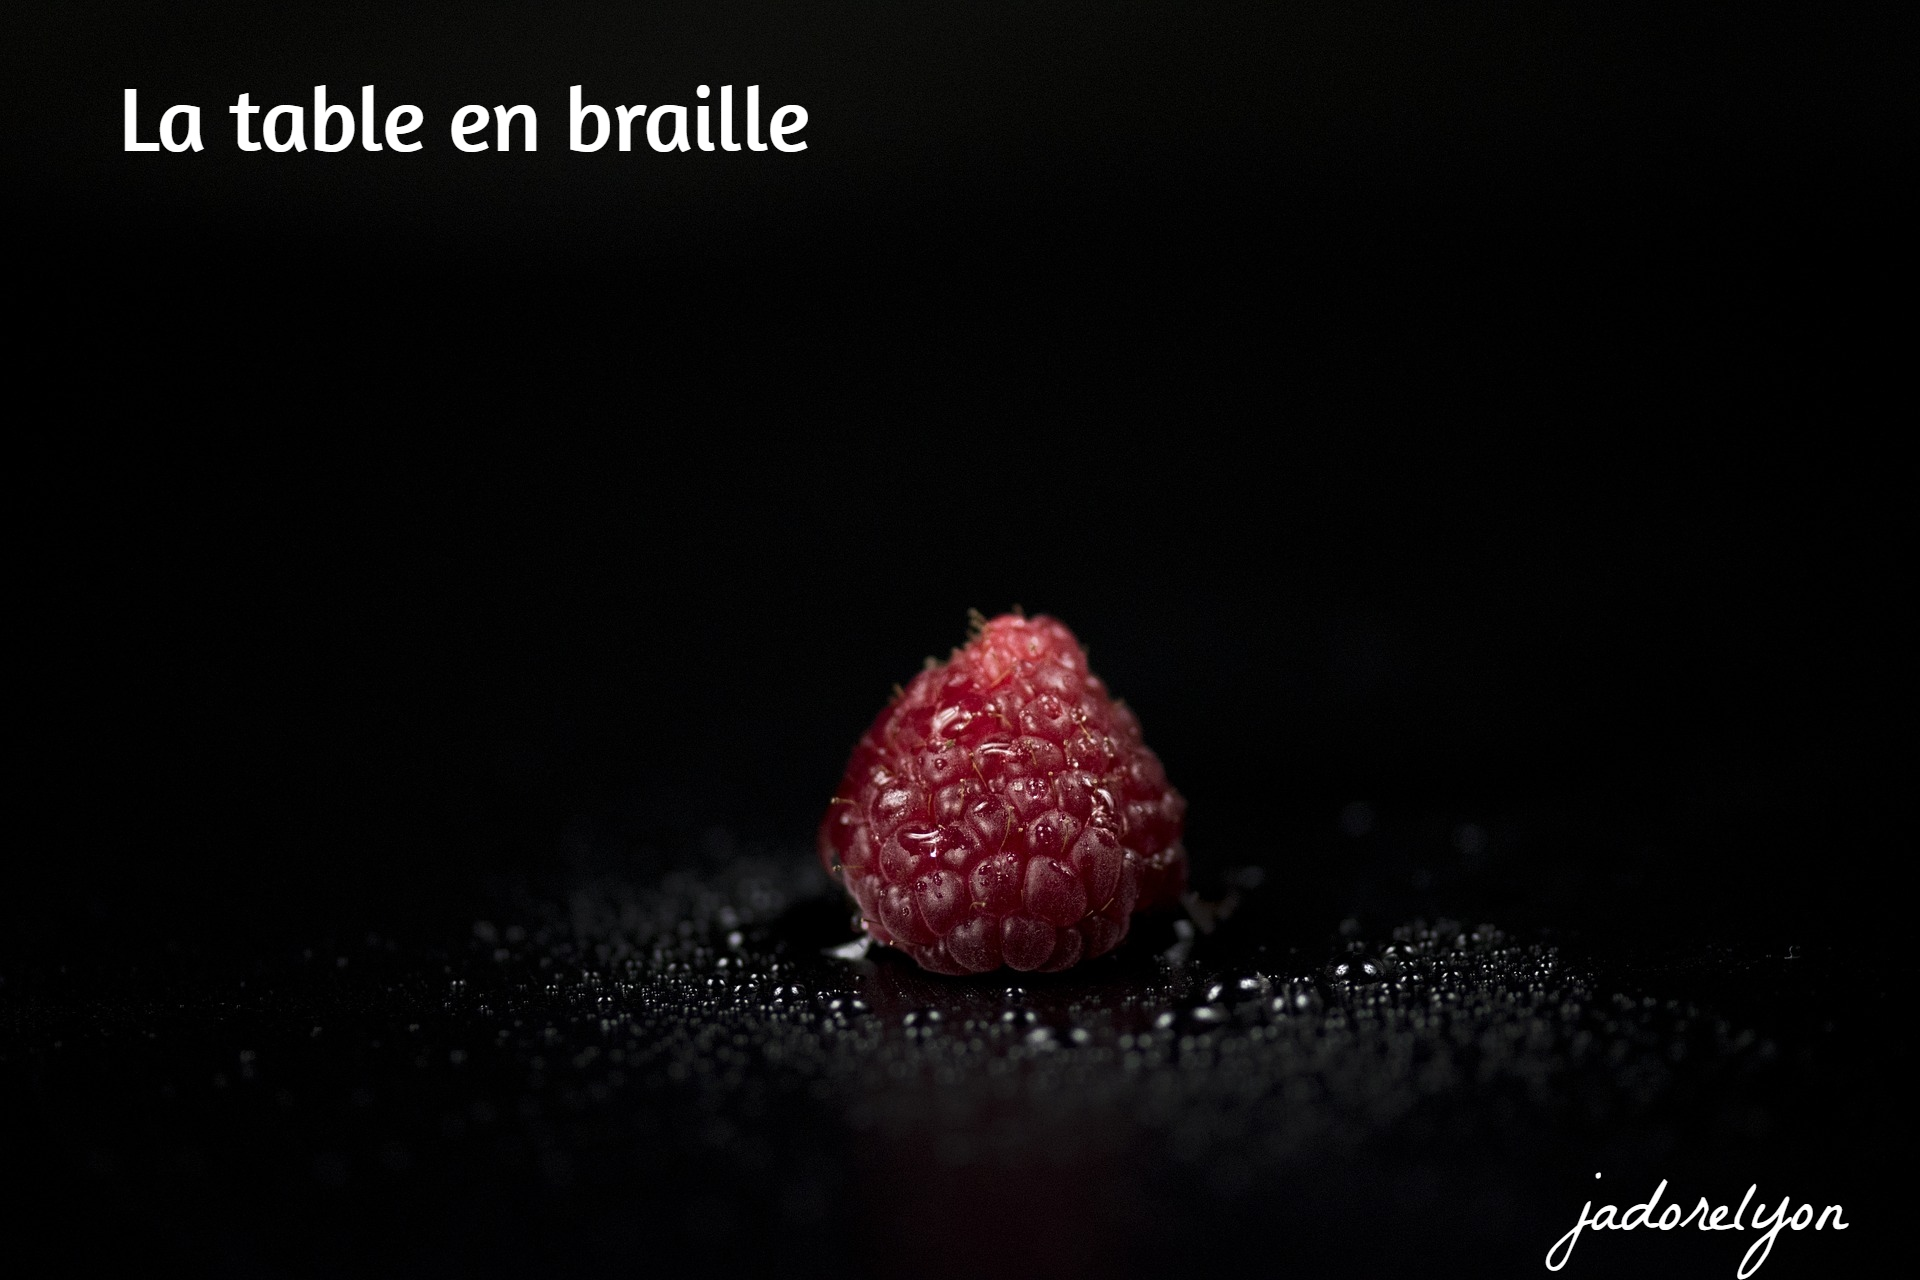 La table en braille